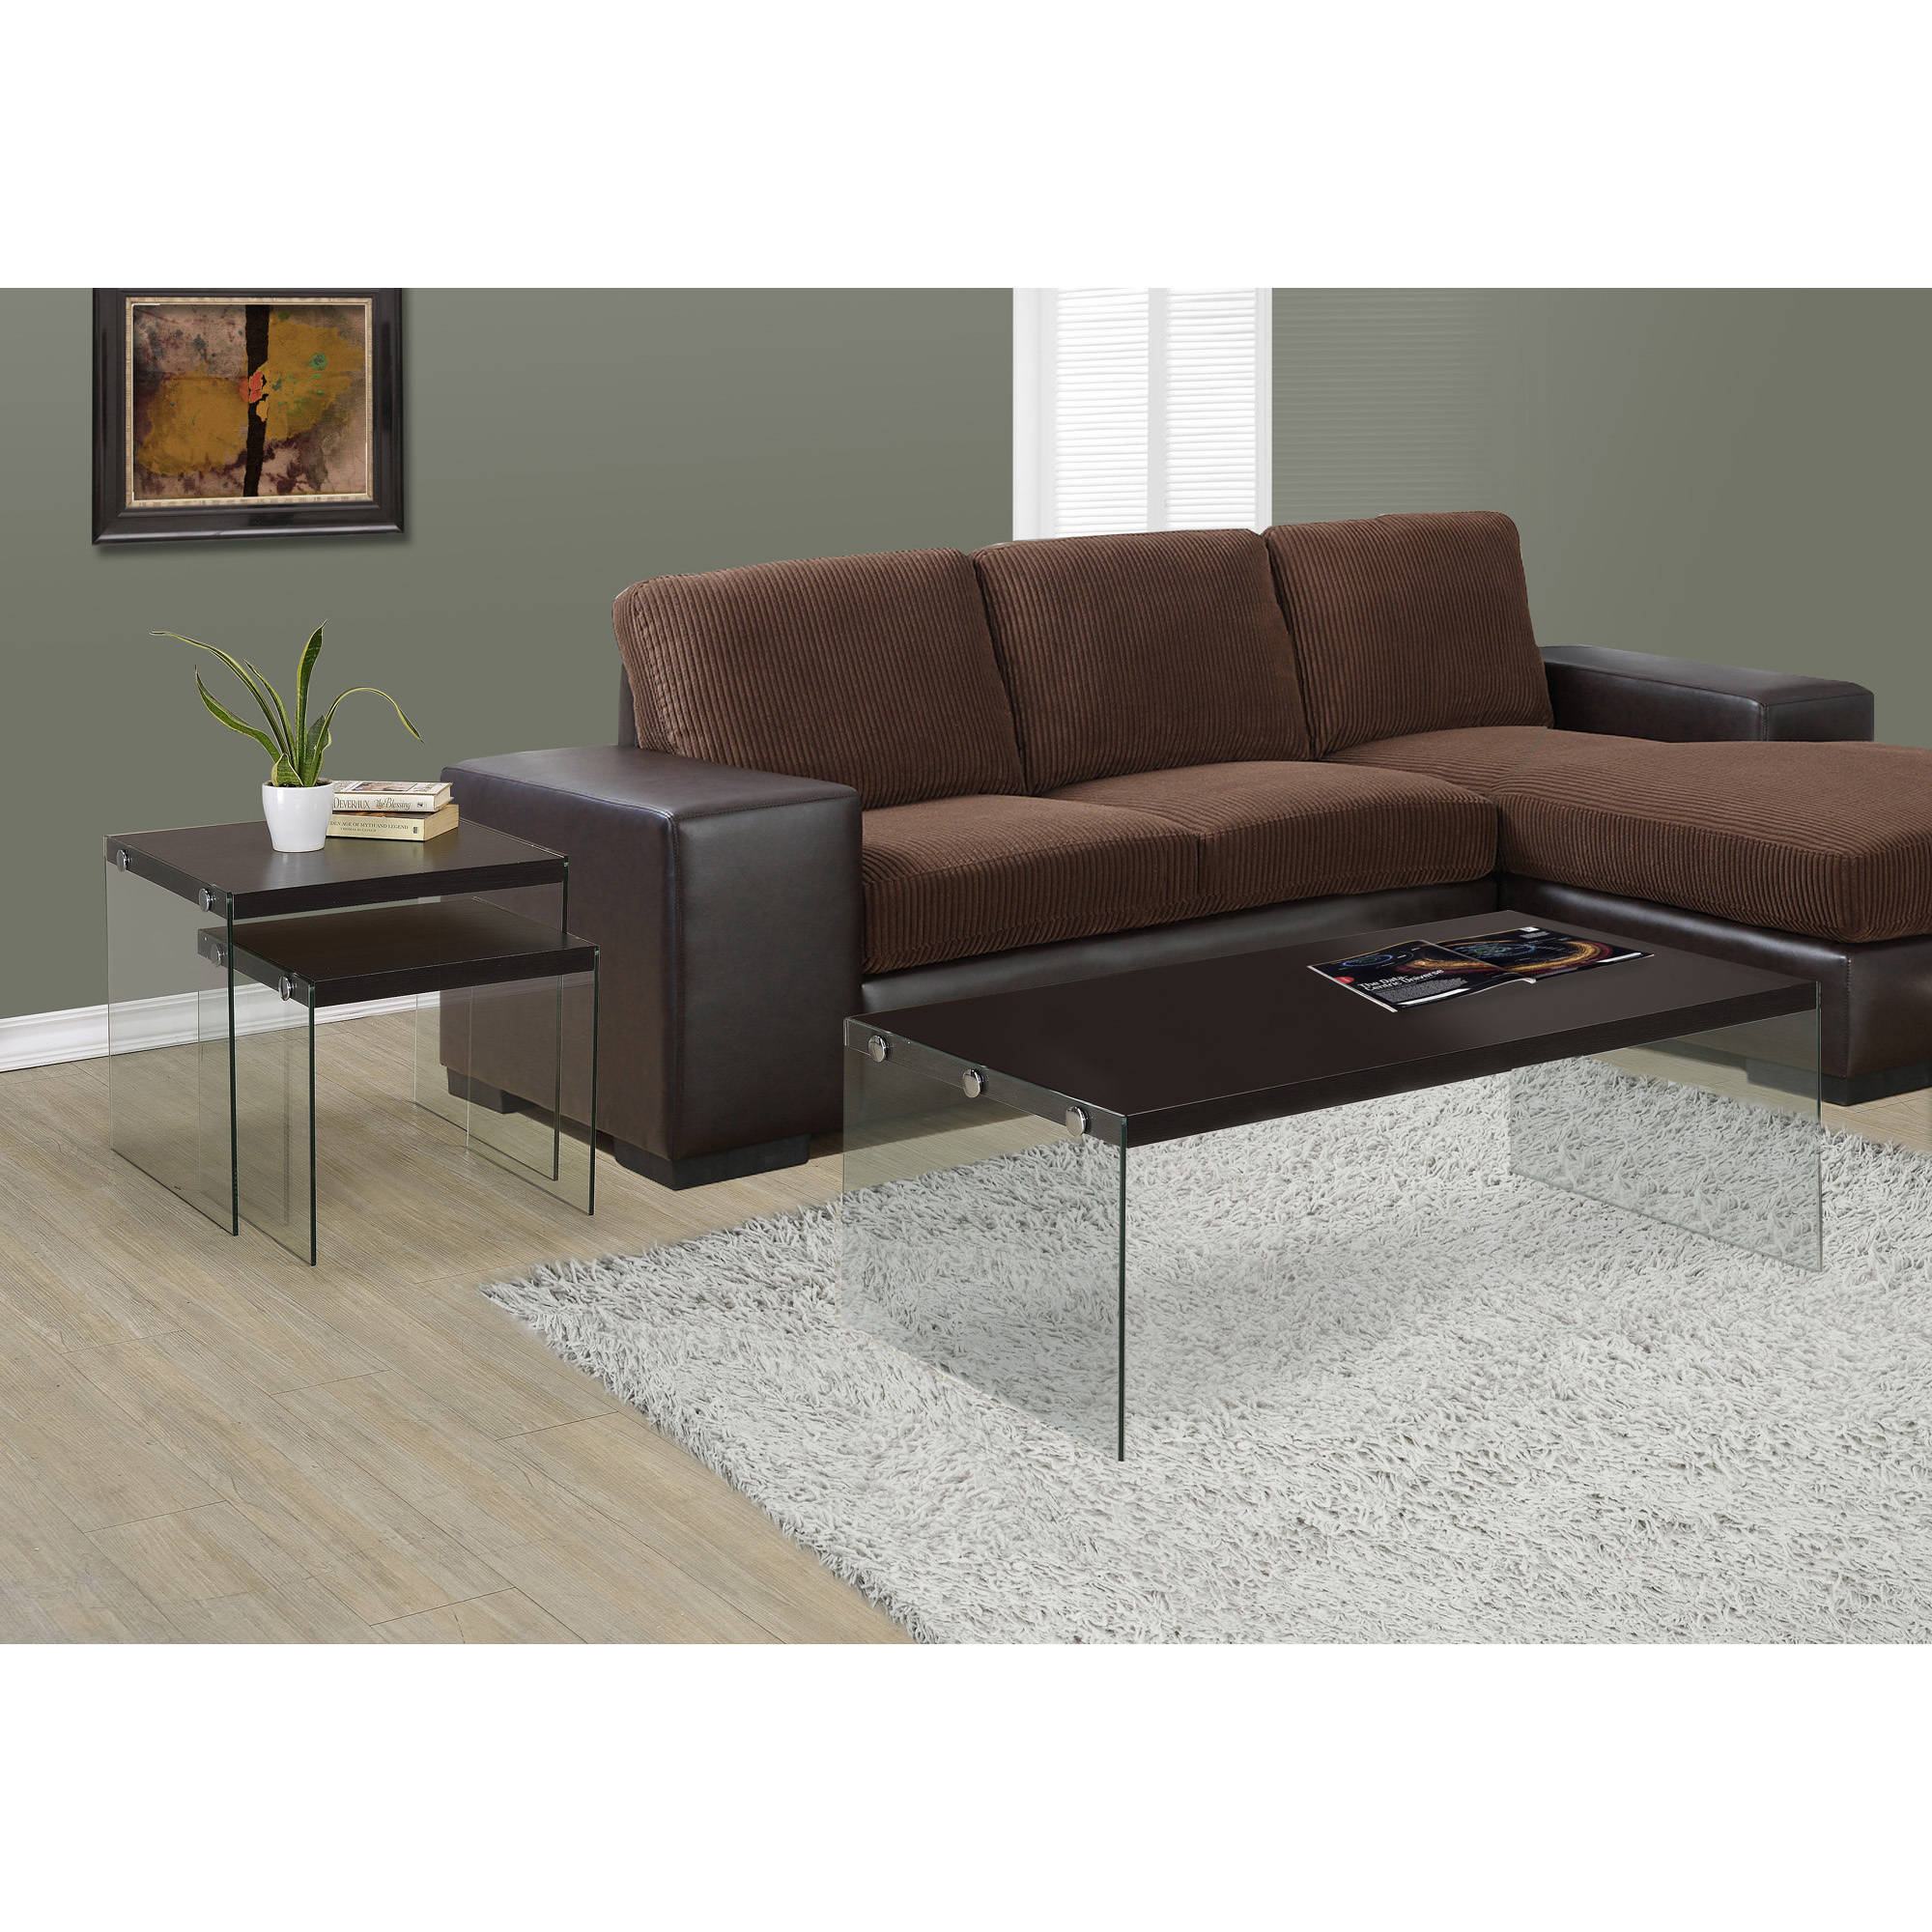 Monarch Coffee Table Glossy Grey With Tempered Glass   Walmart.com